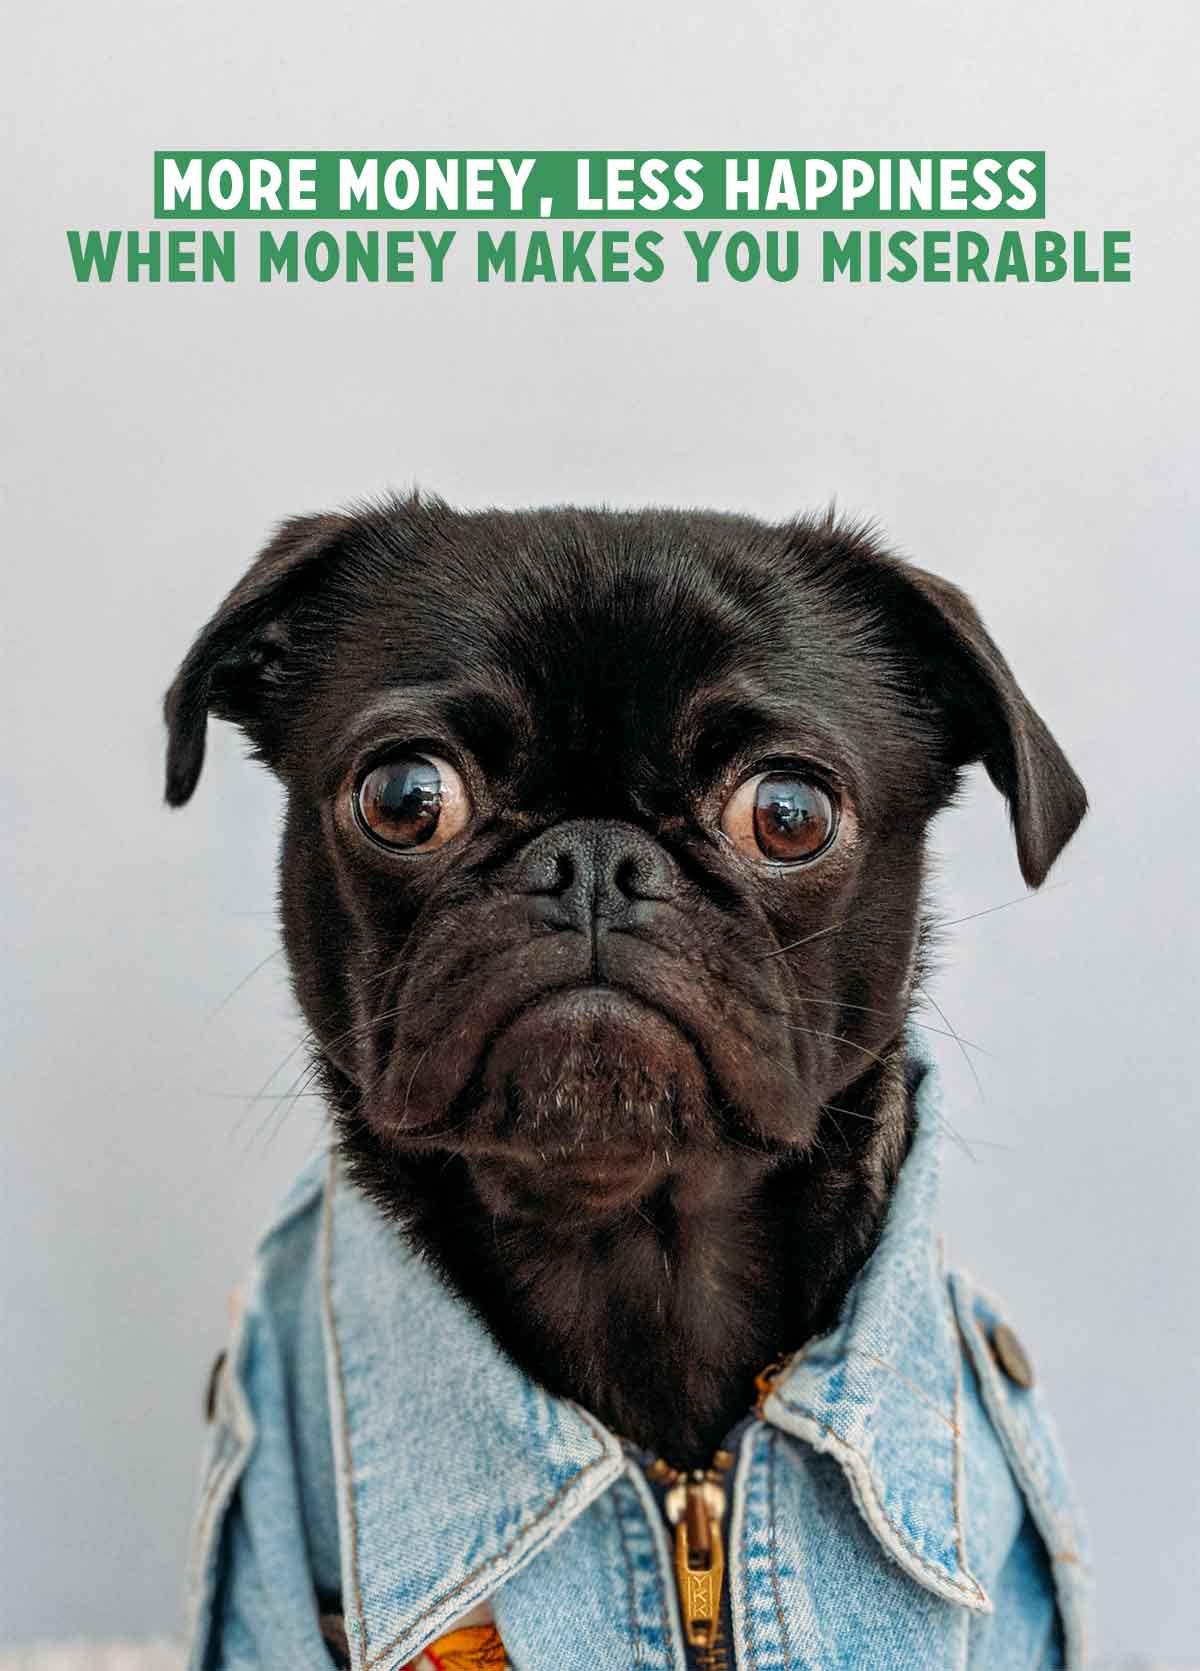 More money, less happiness: When money makes you miserable